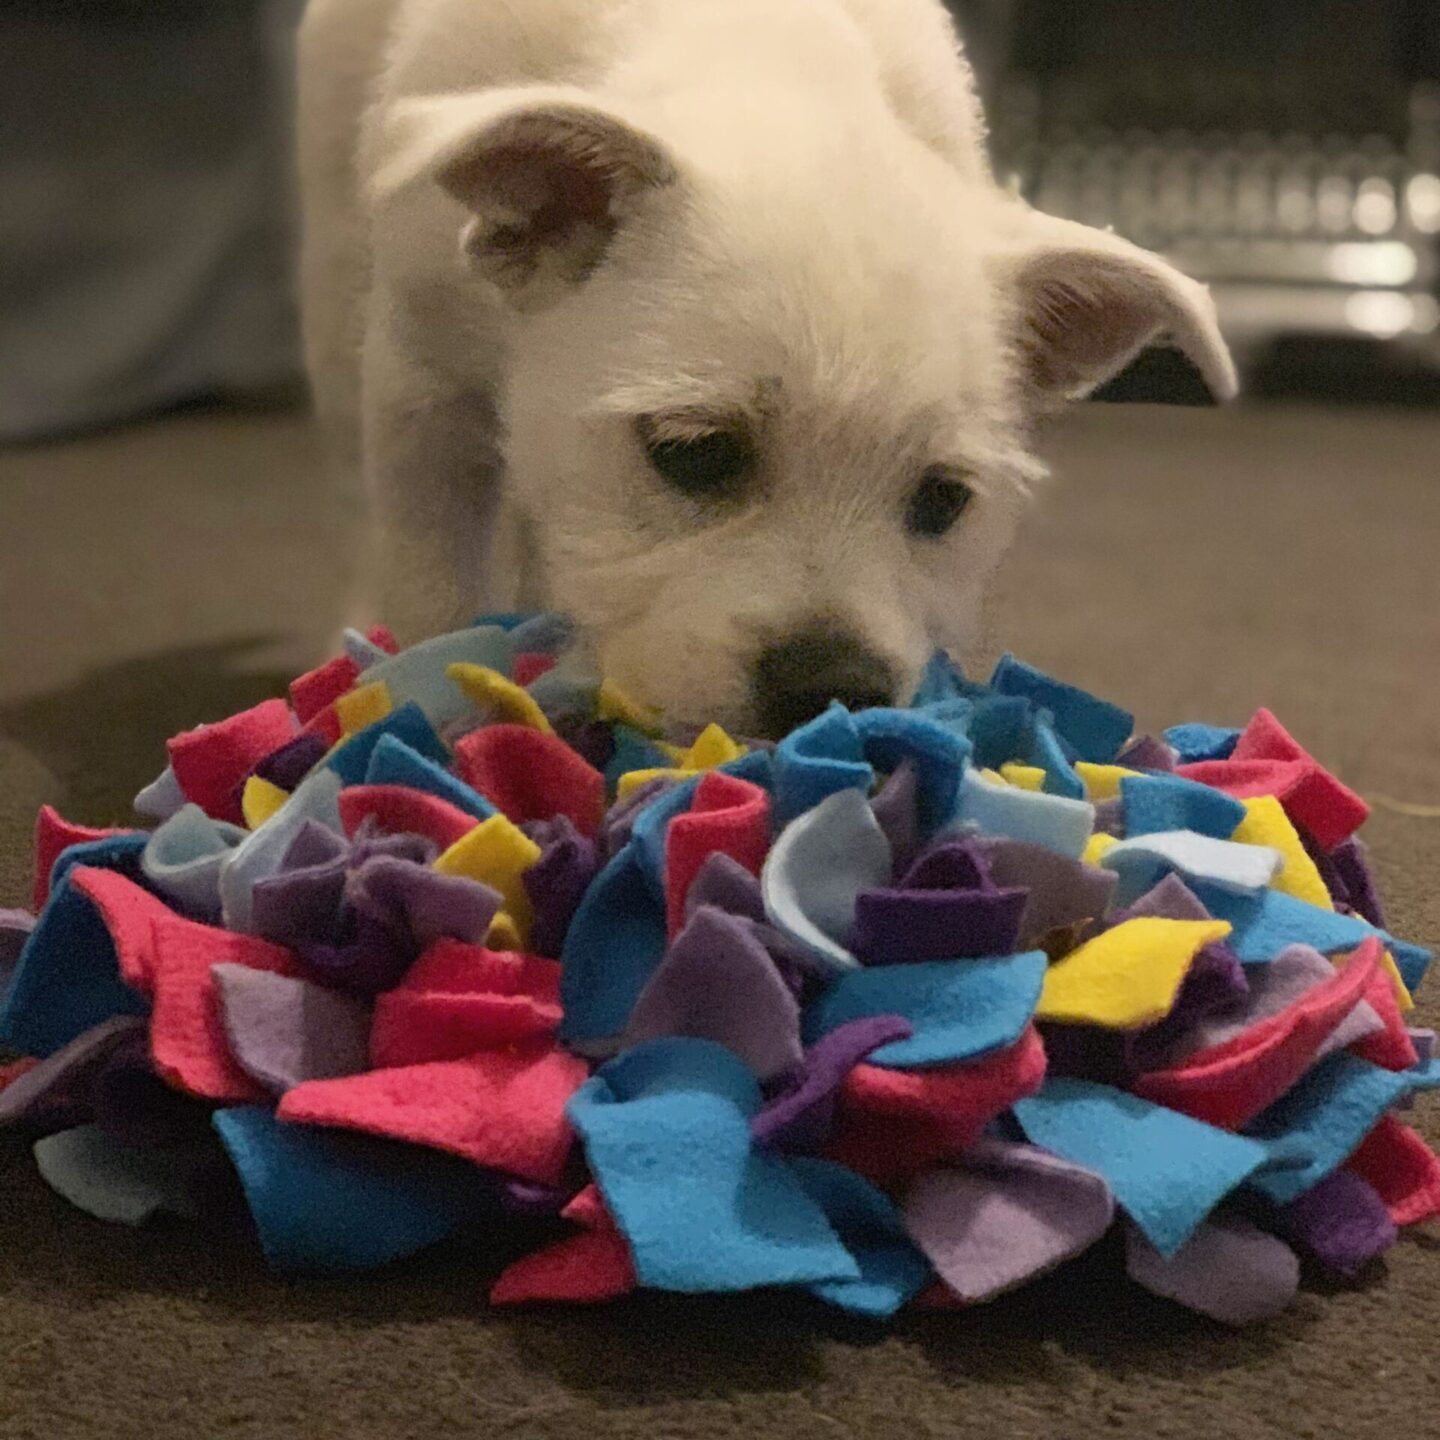 westie puppy playing with a snuffle mat for enrichment.